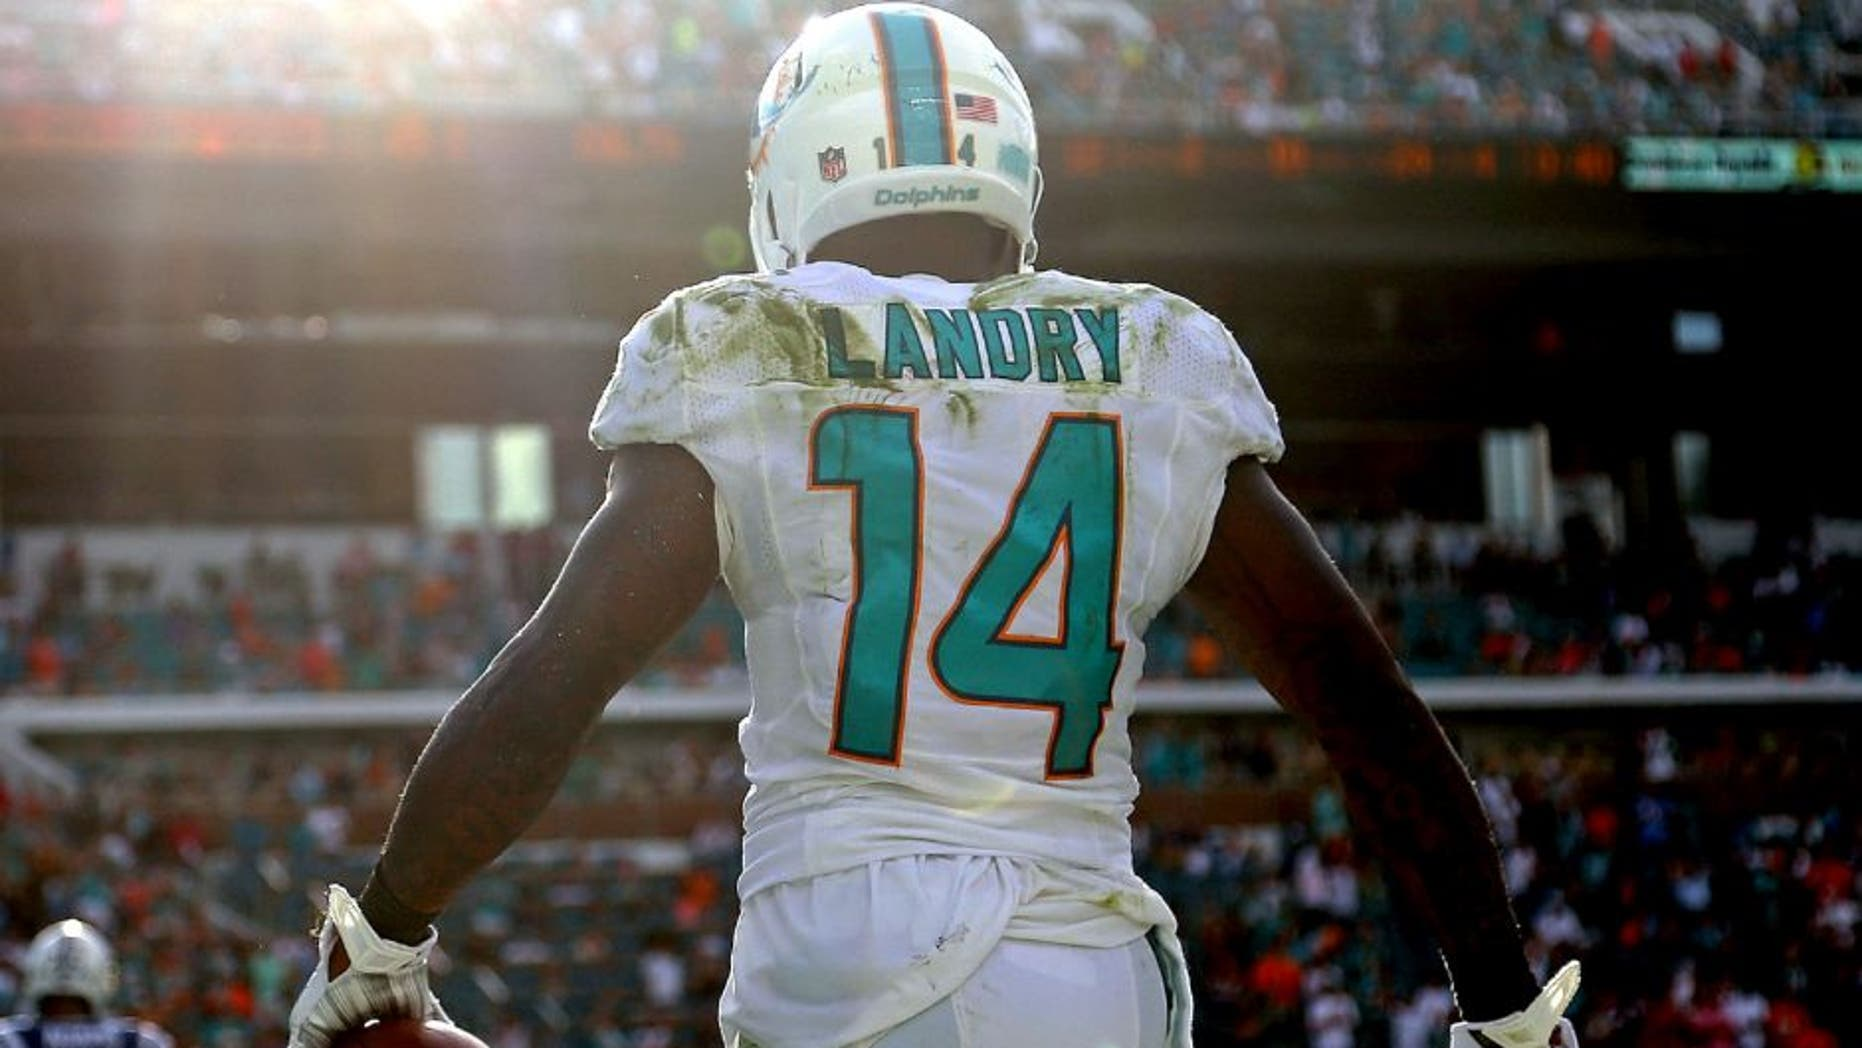 MIAMI GARDENS, FL - DECEMBER 27: Jarvis Landry #14 of the Miami Dolphins reacts to a catch during a game against the Indianapolis Colts at Sun Life Stadium on December 27, 2015 in Miami Gardens, Florida. (Photo by Mike Ehrmann/Getty Images)